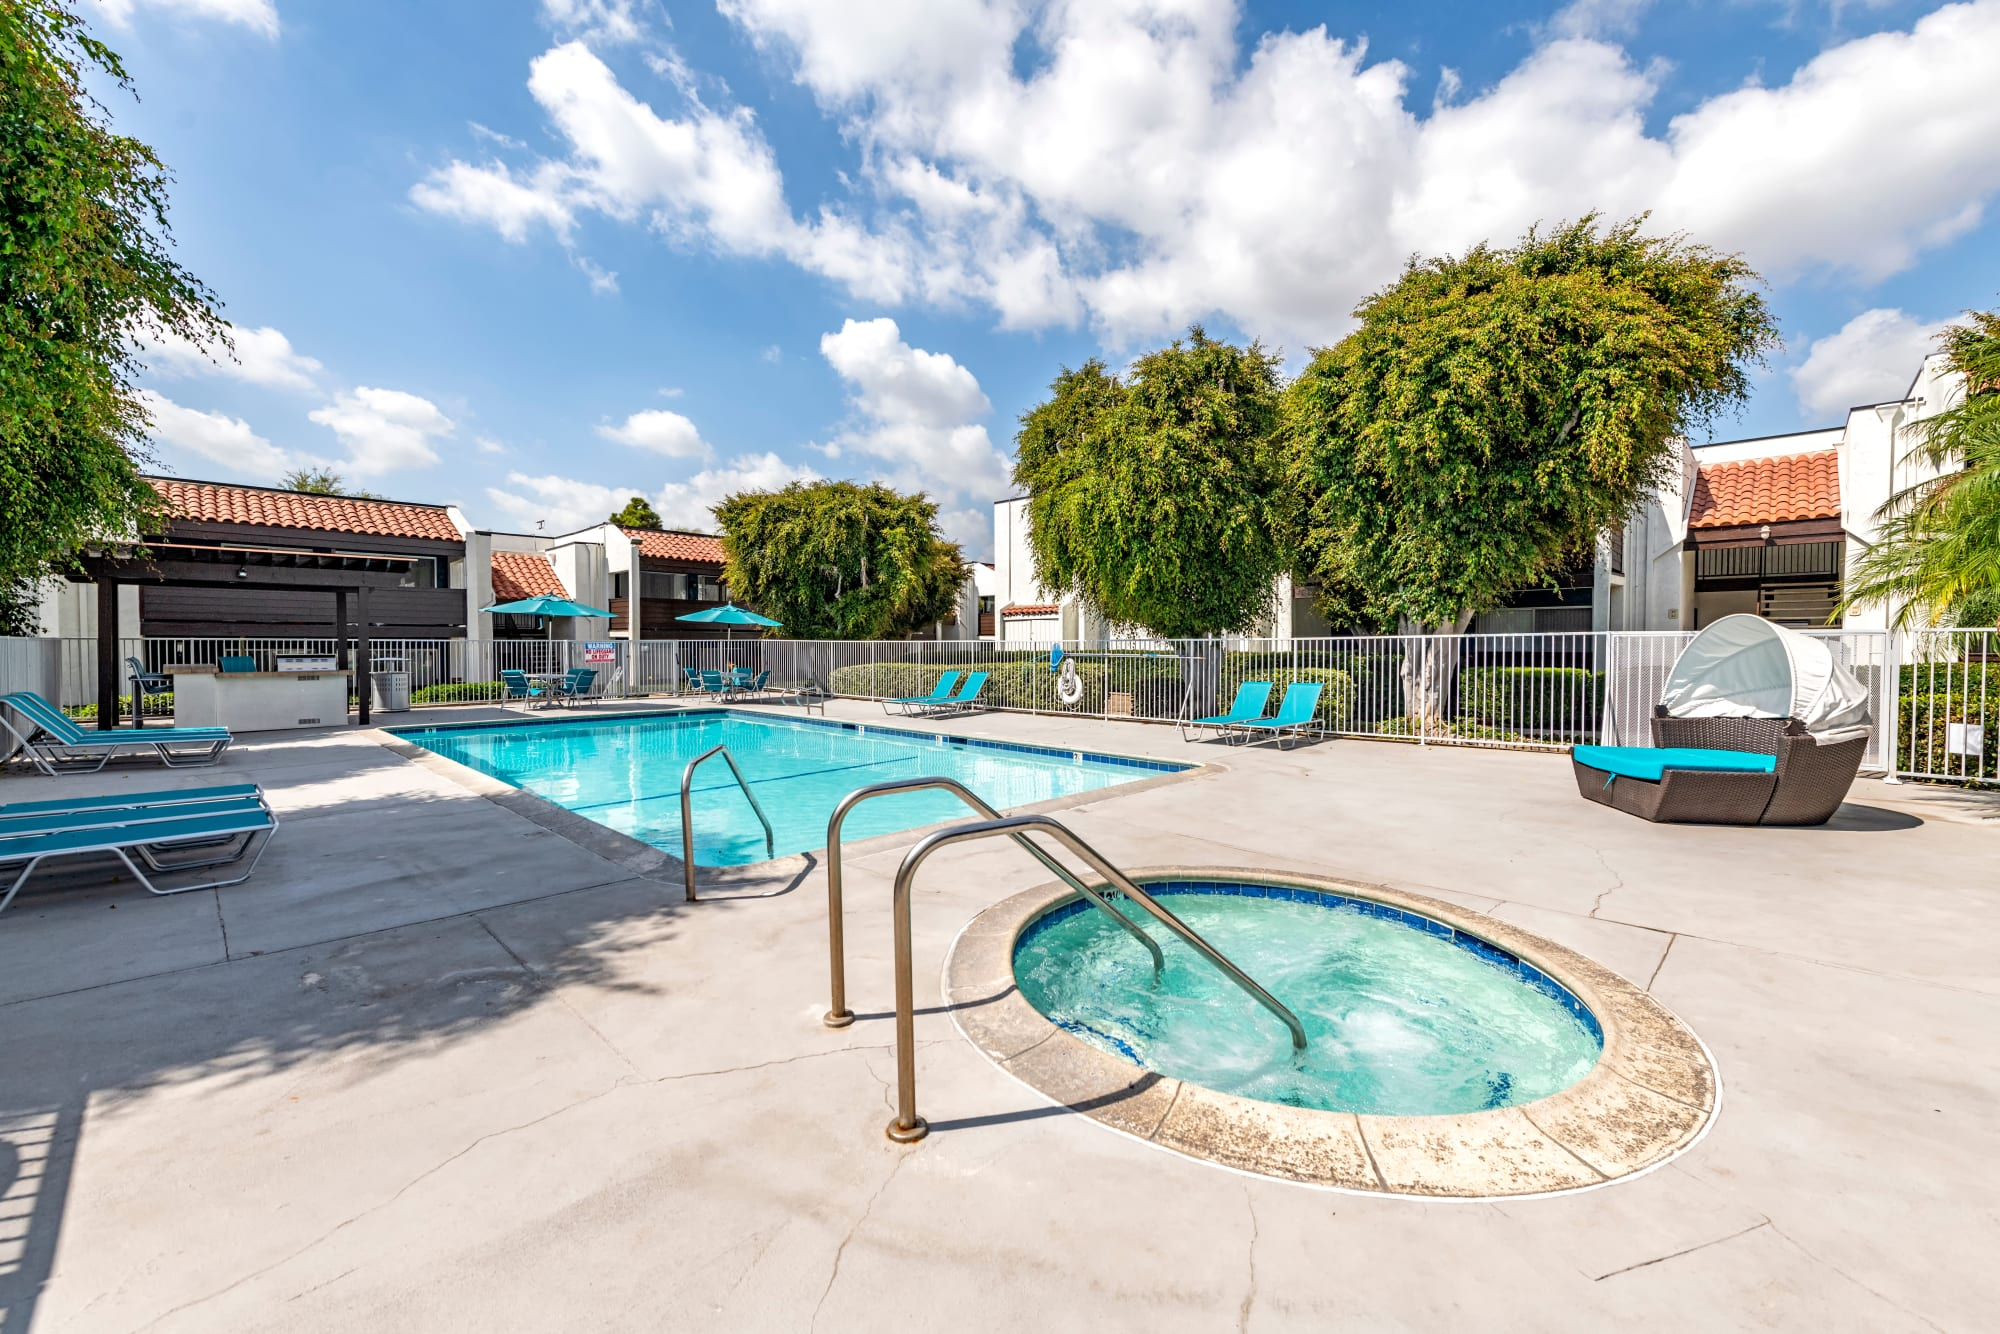 The pool, spa, cabana and barbecue area at Kendallwood Apartments in Whittier, California